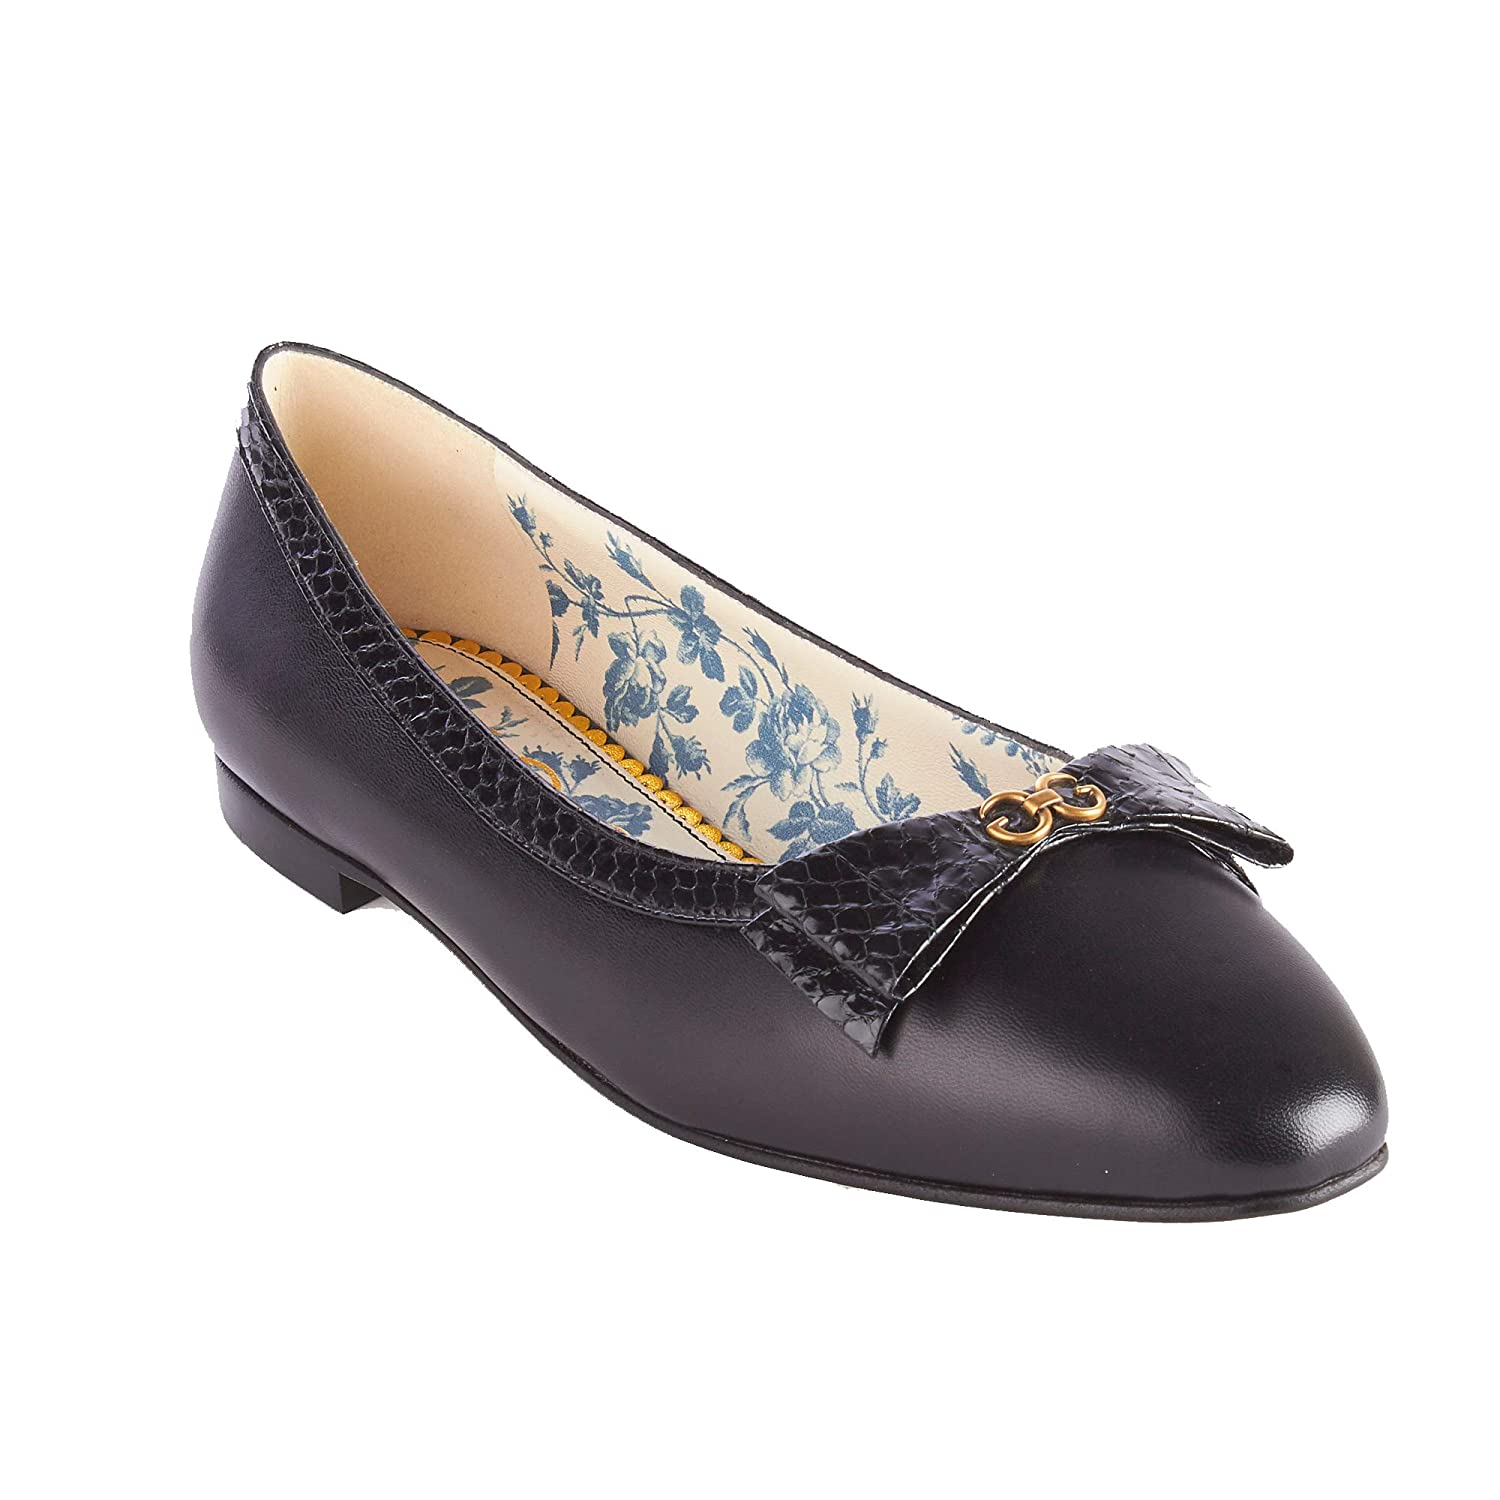 bff5c8504 Amazon.com  Gucci Women s Leather Snakeskin Bow Ballet Flat Shoes Black   Shoes